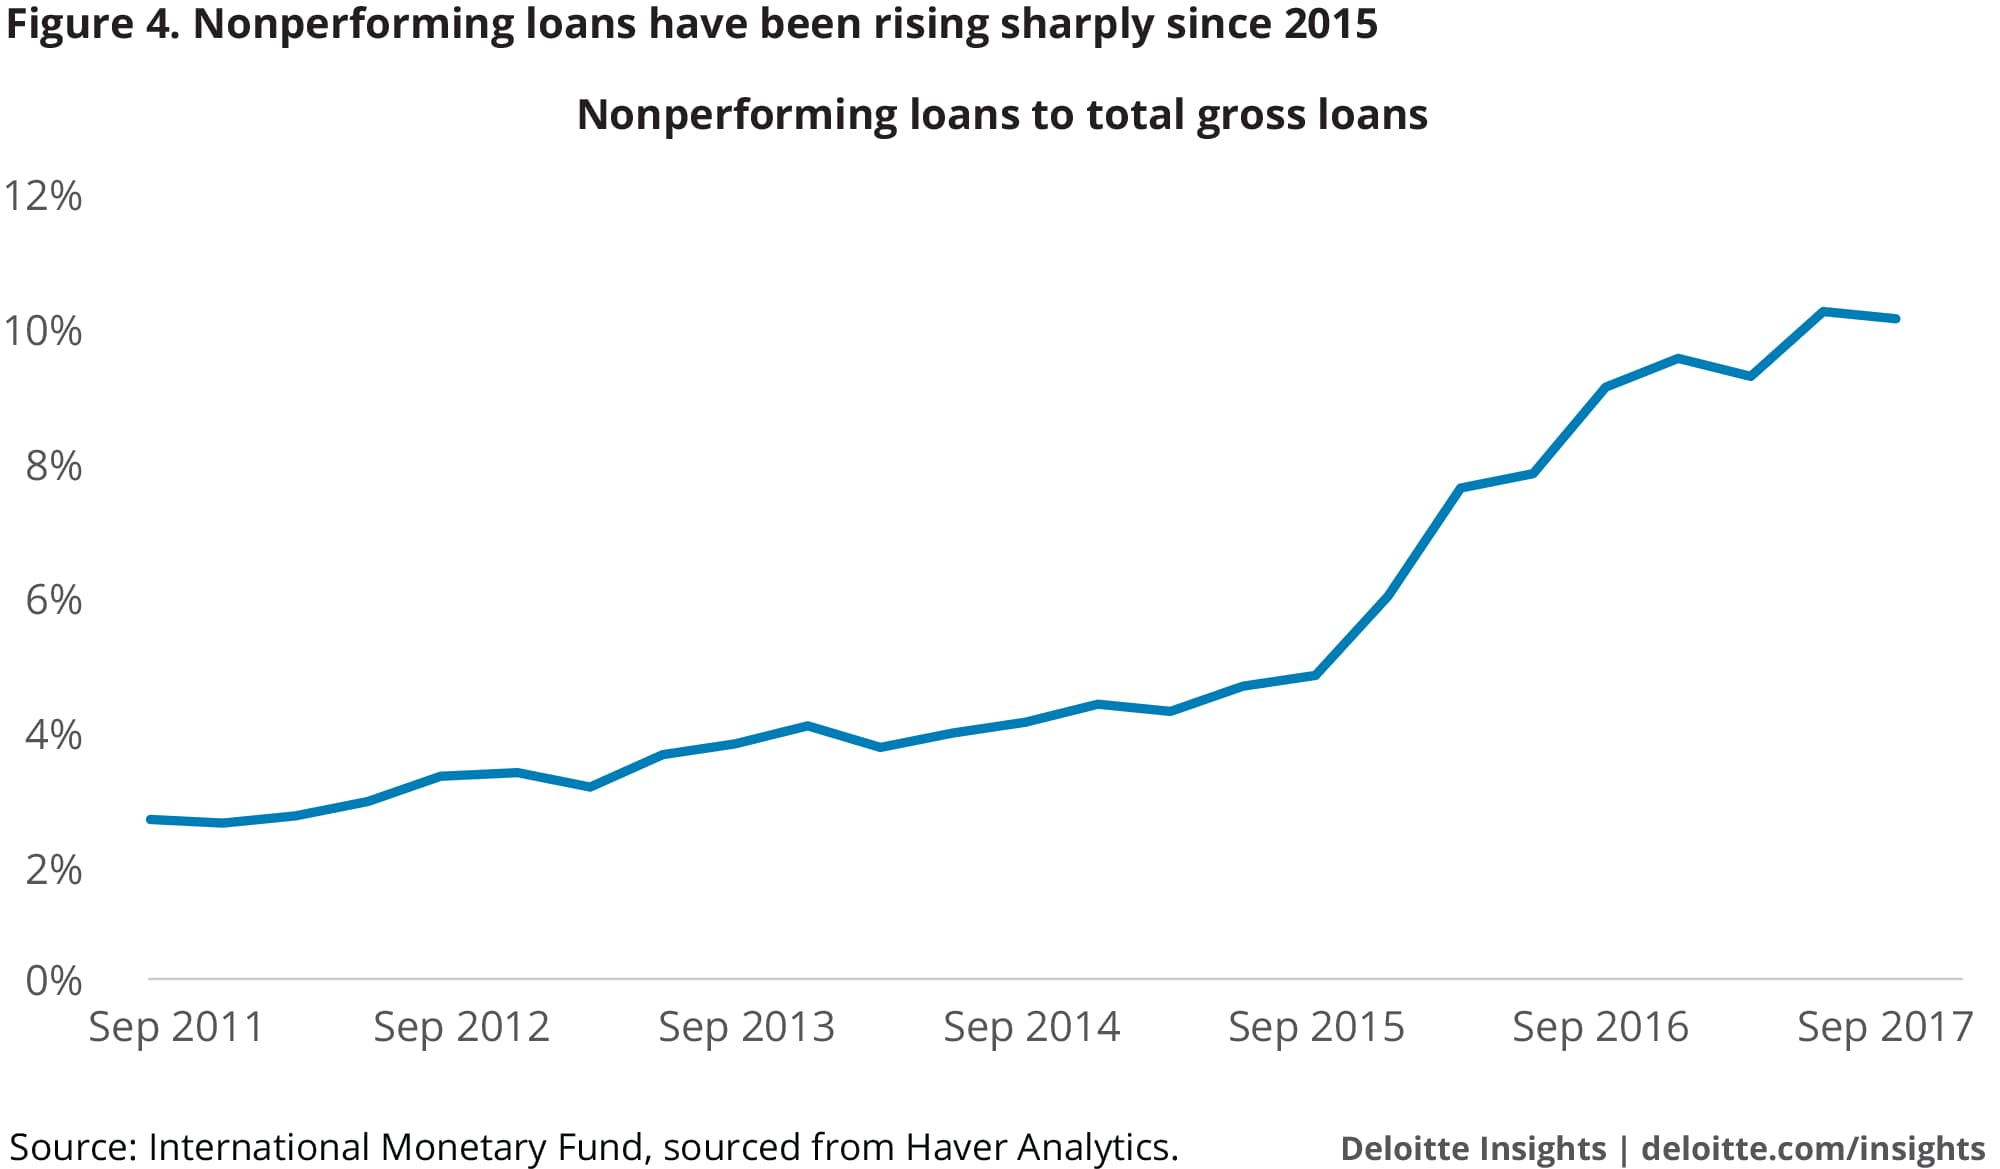 Nonperforming loans have been rising sharply since 2015